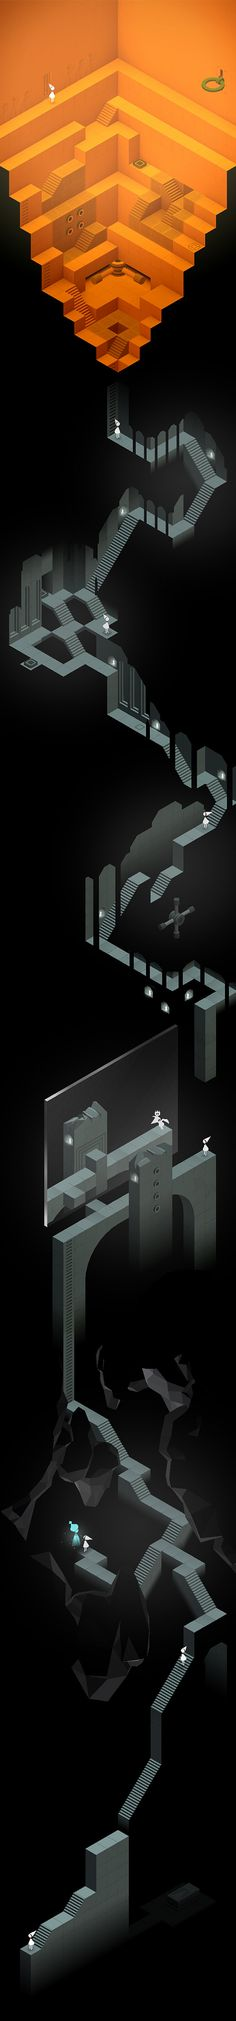 Monument Valley game - The Descent (Chapter IX), full vertical picture with Ida (the princess) and monument stairs.